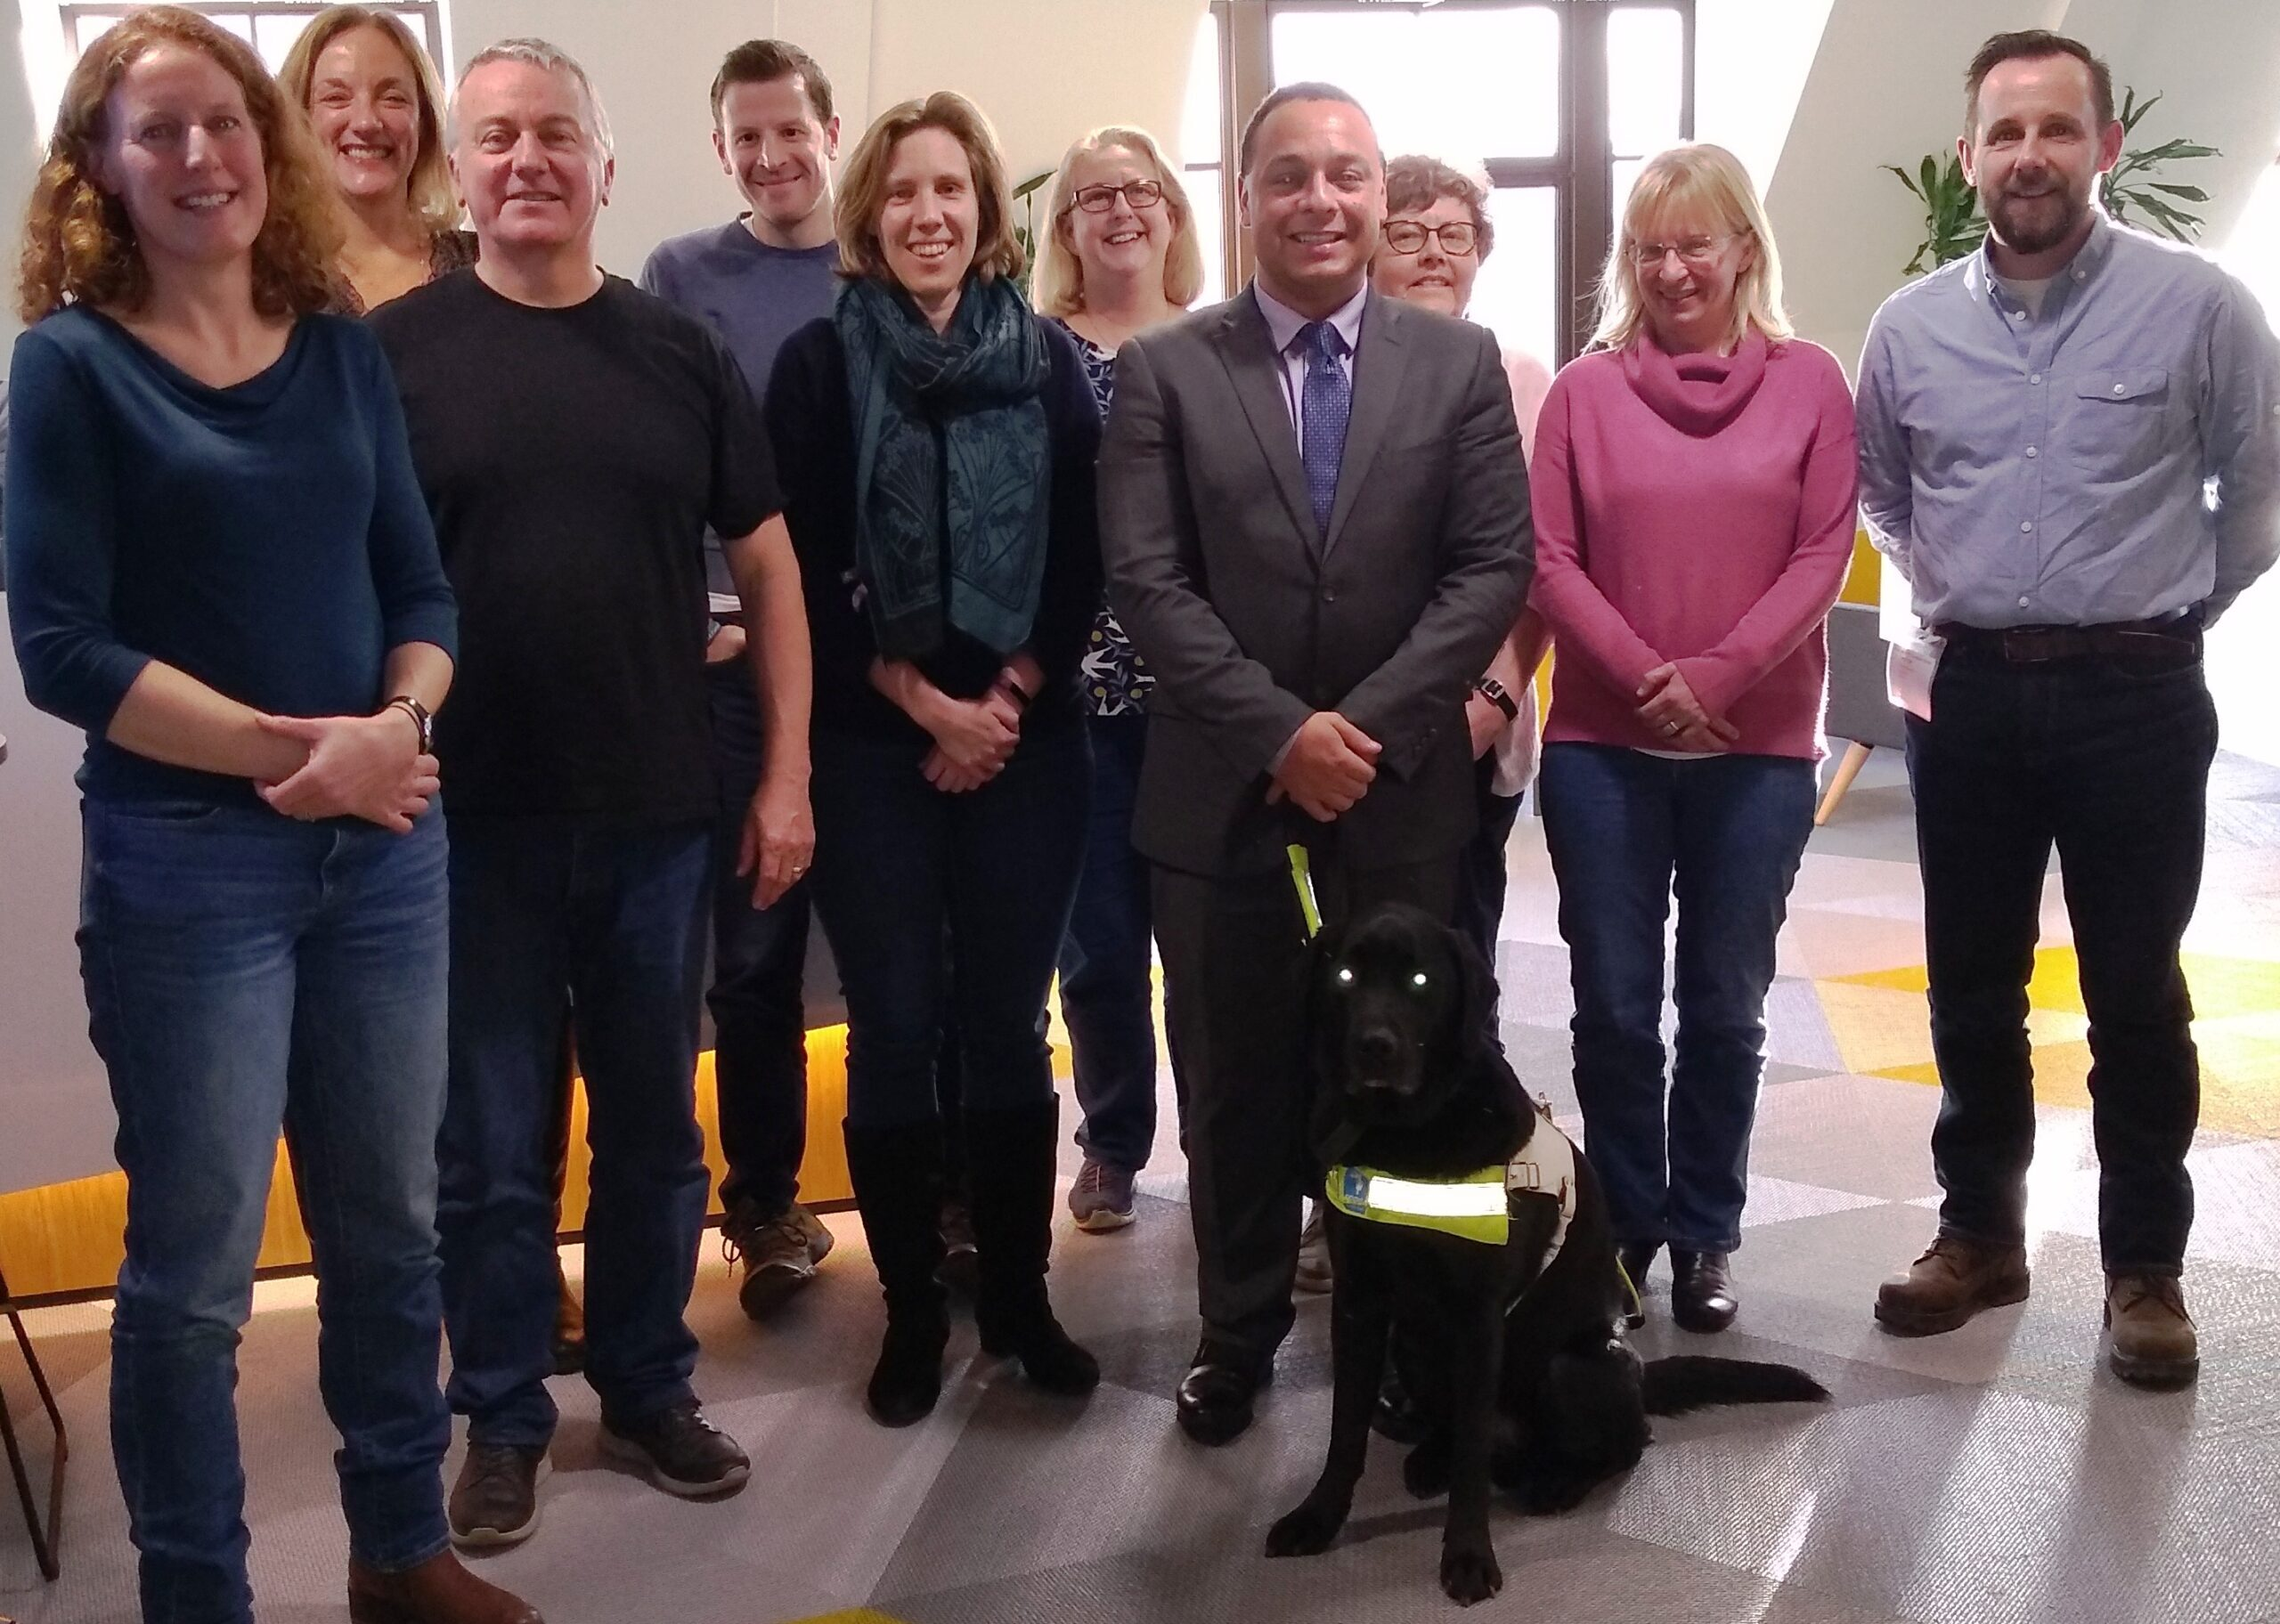 Nystagmus Network trustees stand together and smile at the camera.